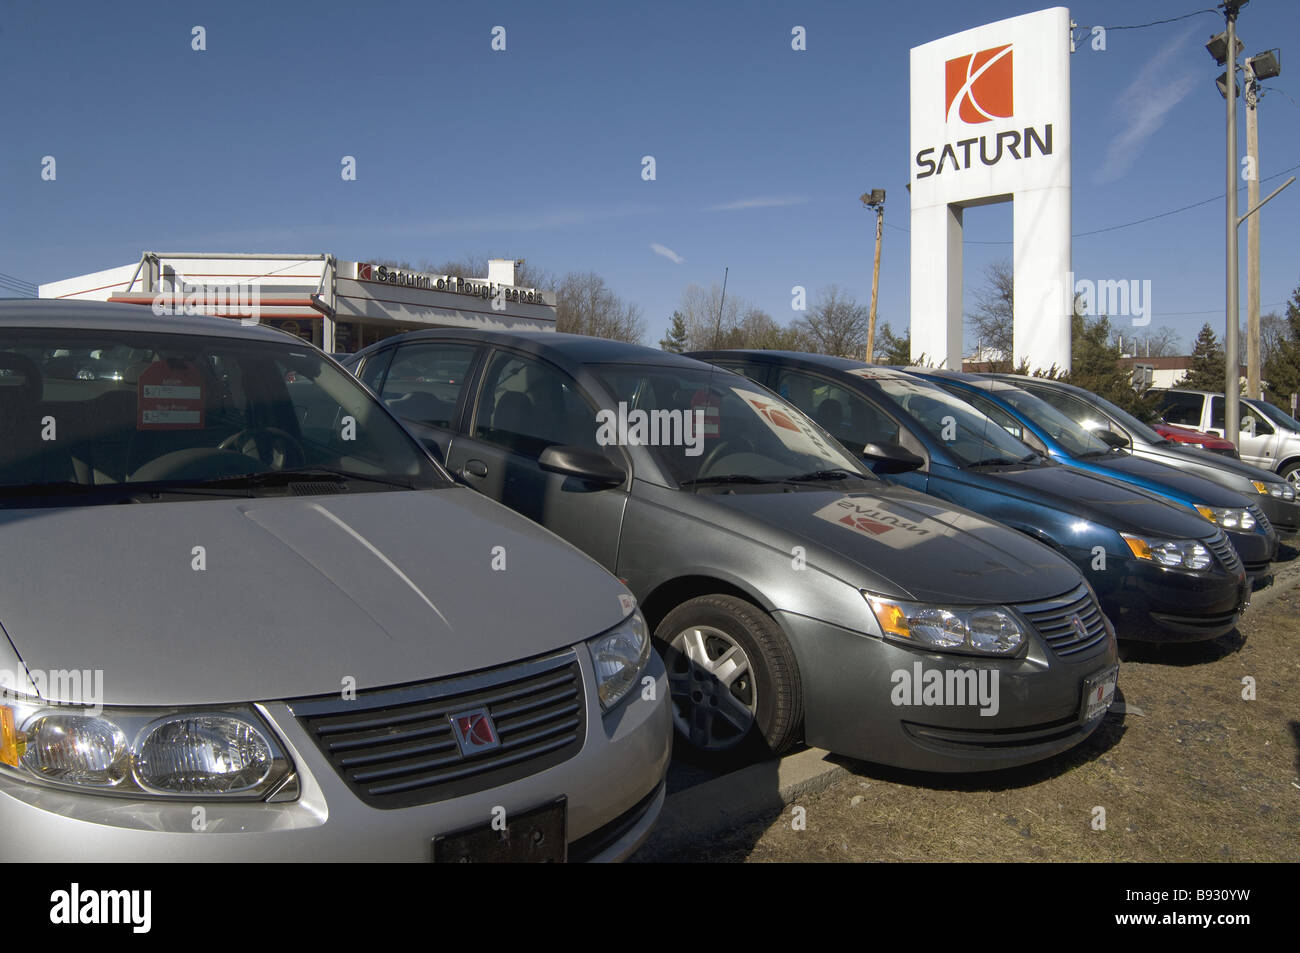 Saturn car dealership lot during 2009 recession full of unsold cars ...